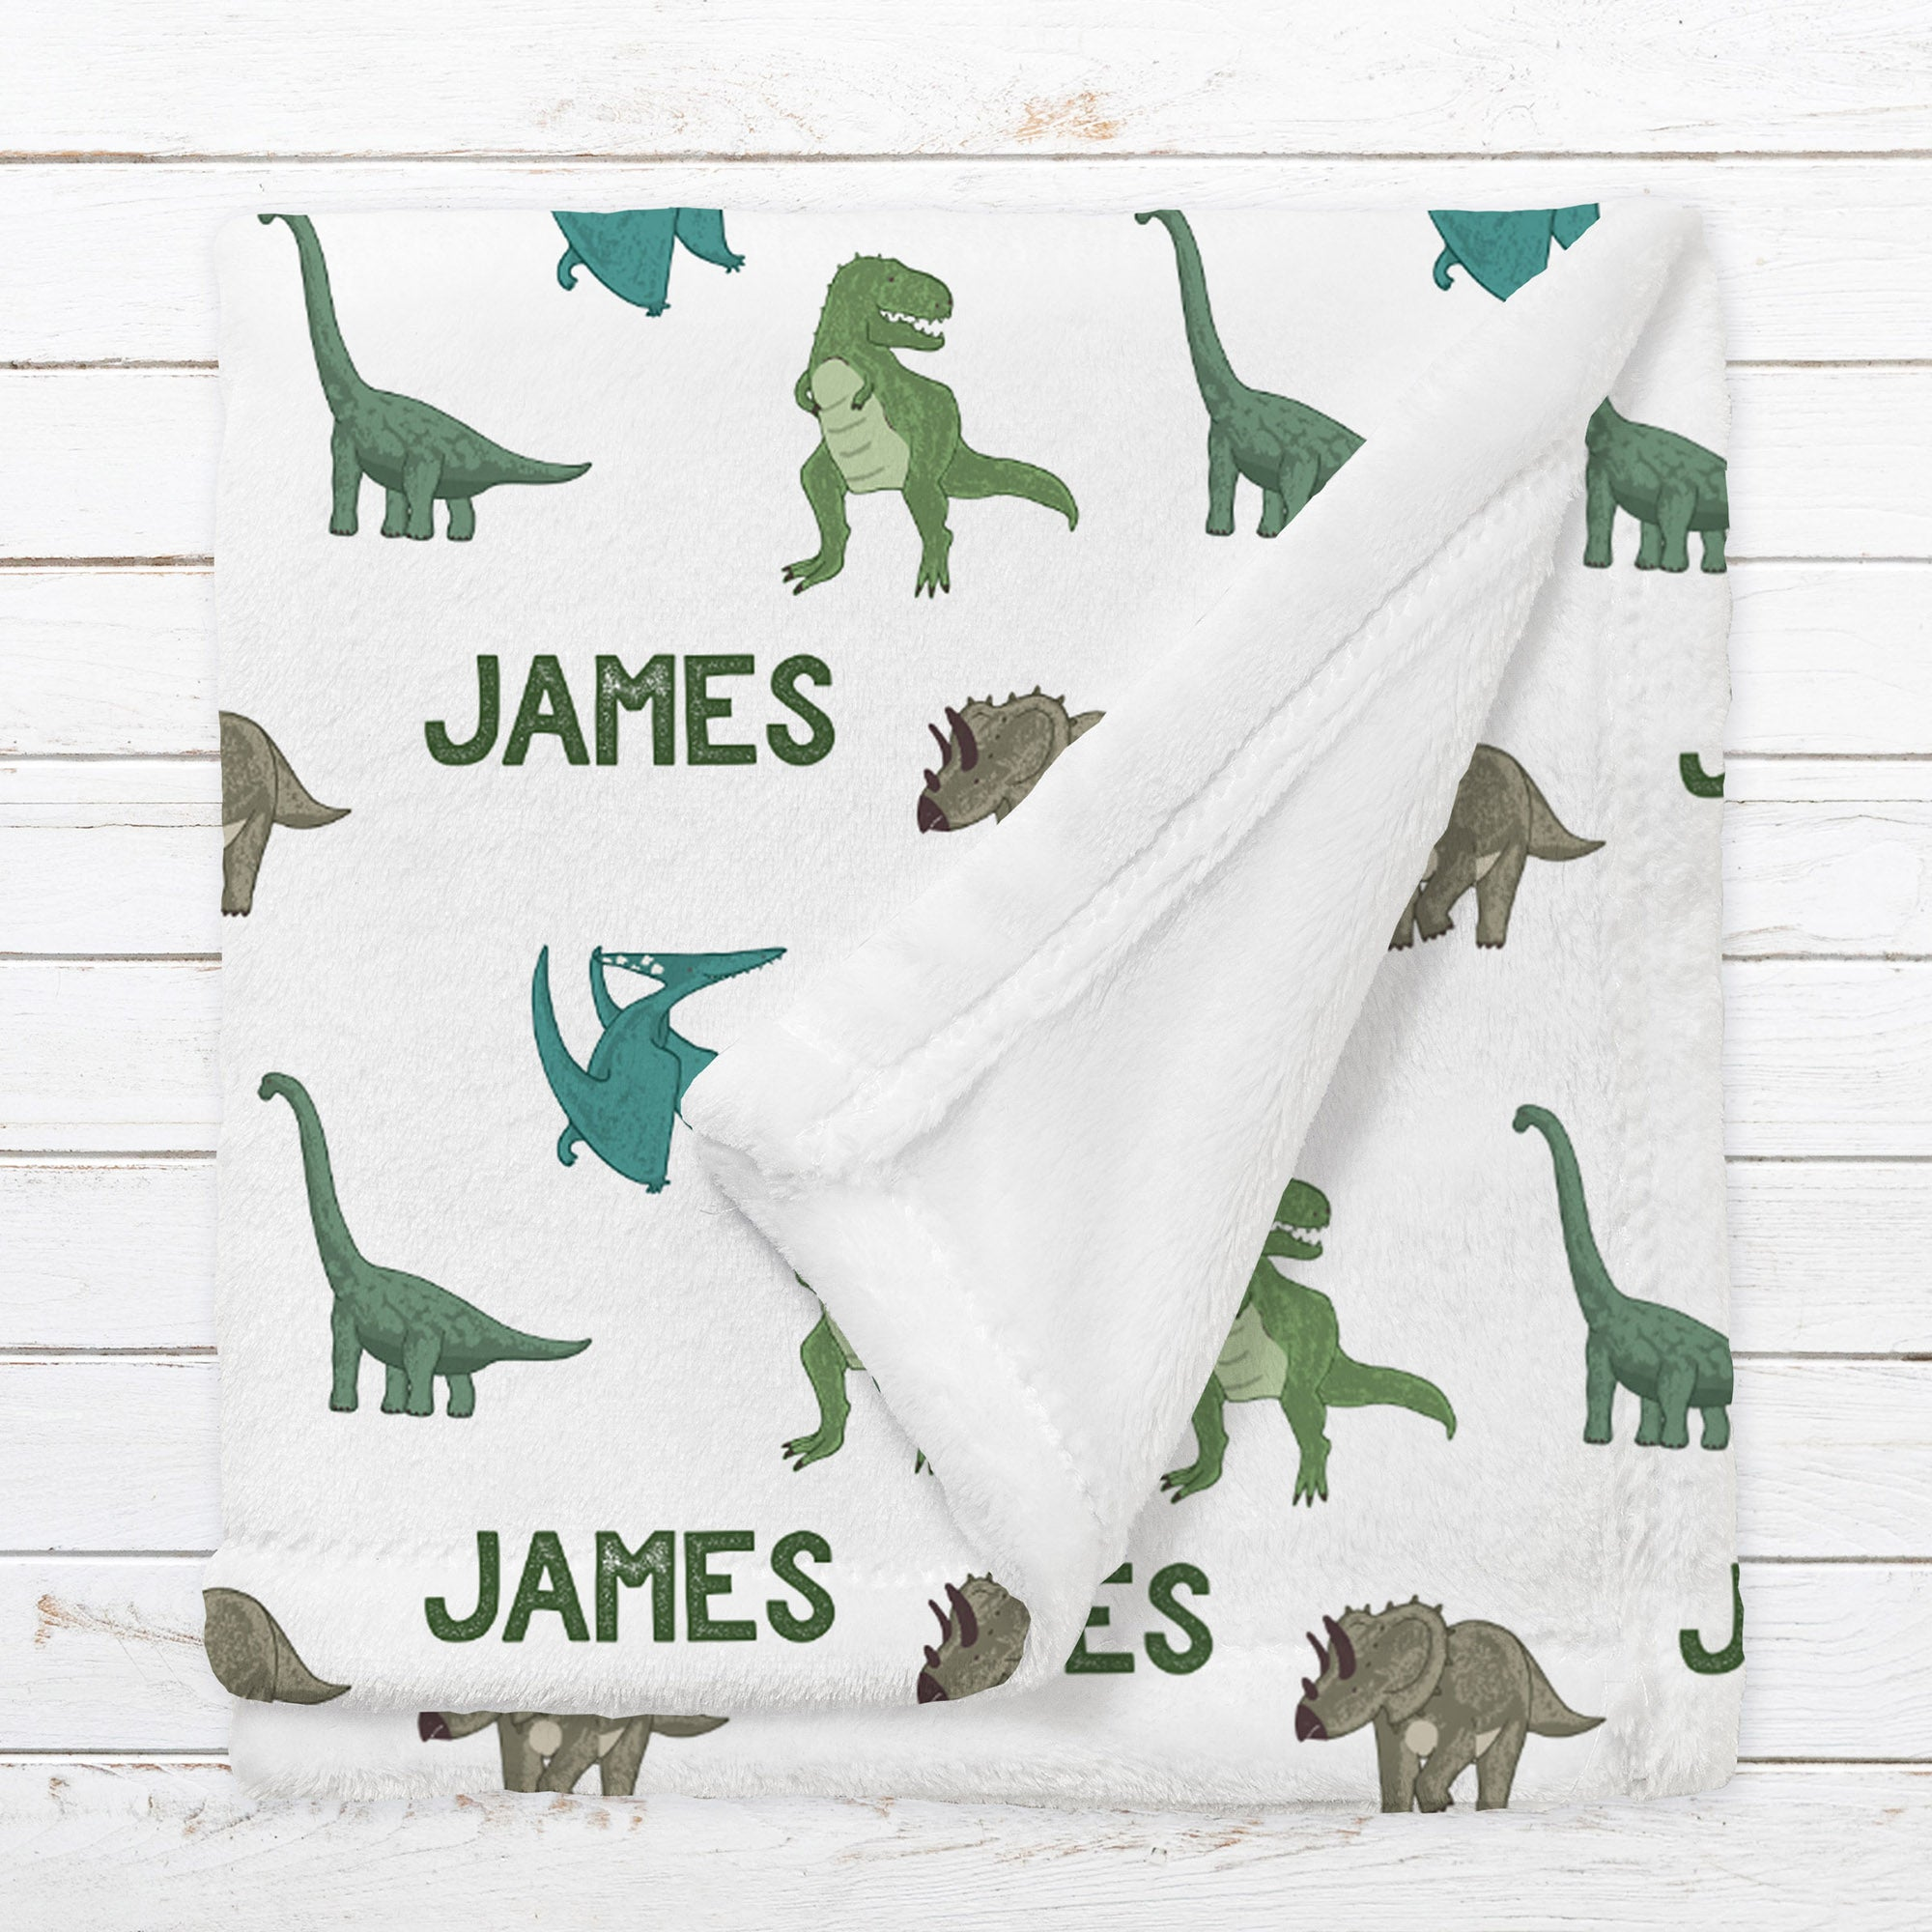 Personalized Dinosaur Blanket for Babies, Toddlers and Kids - A Roar Party